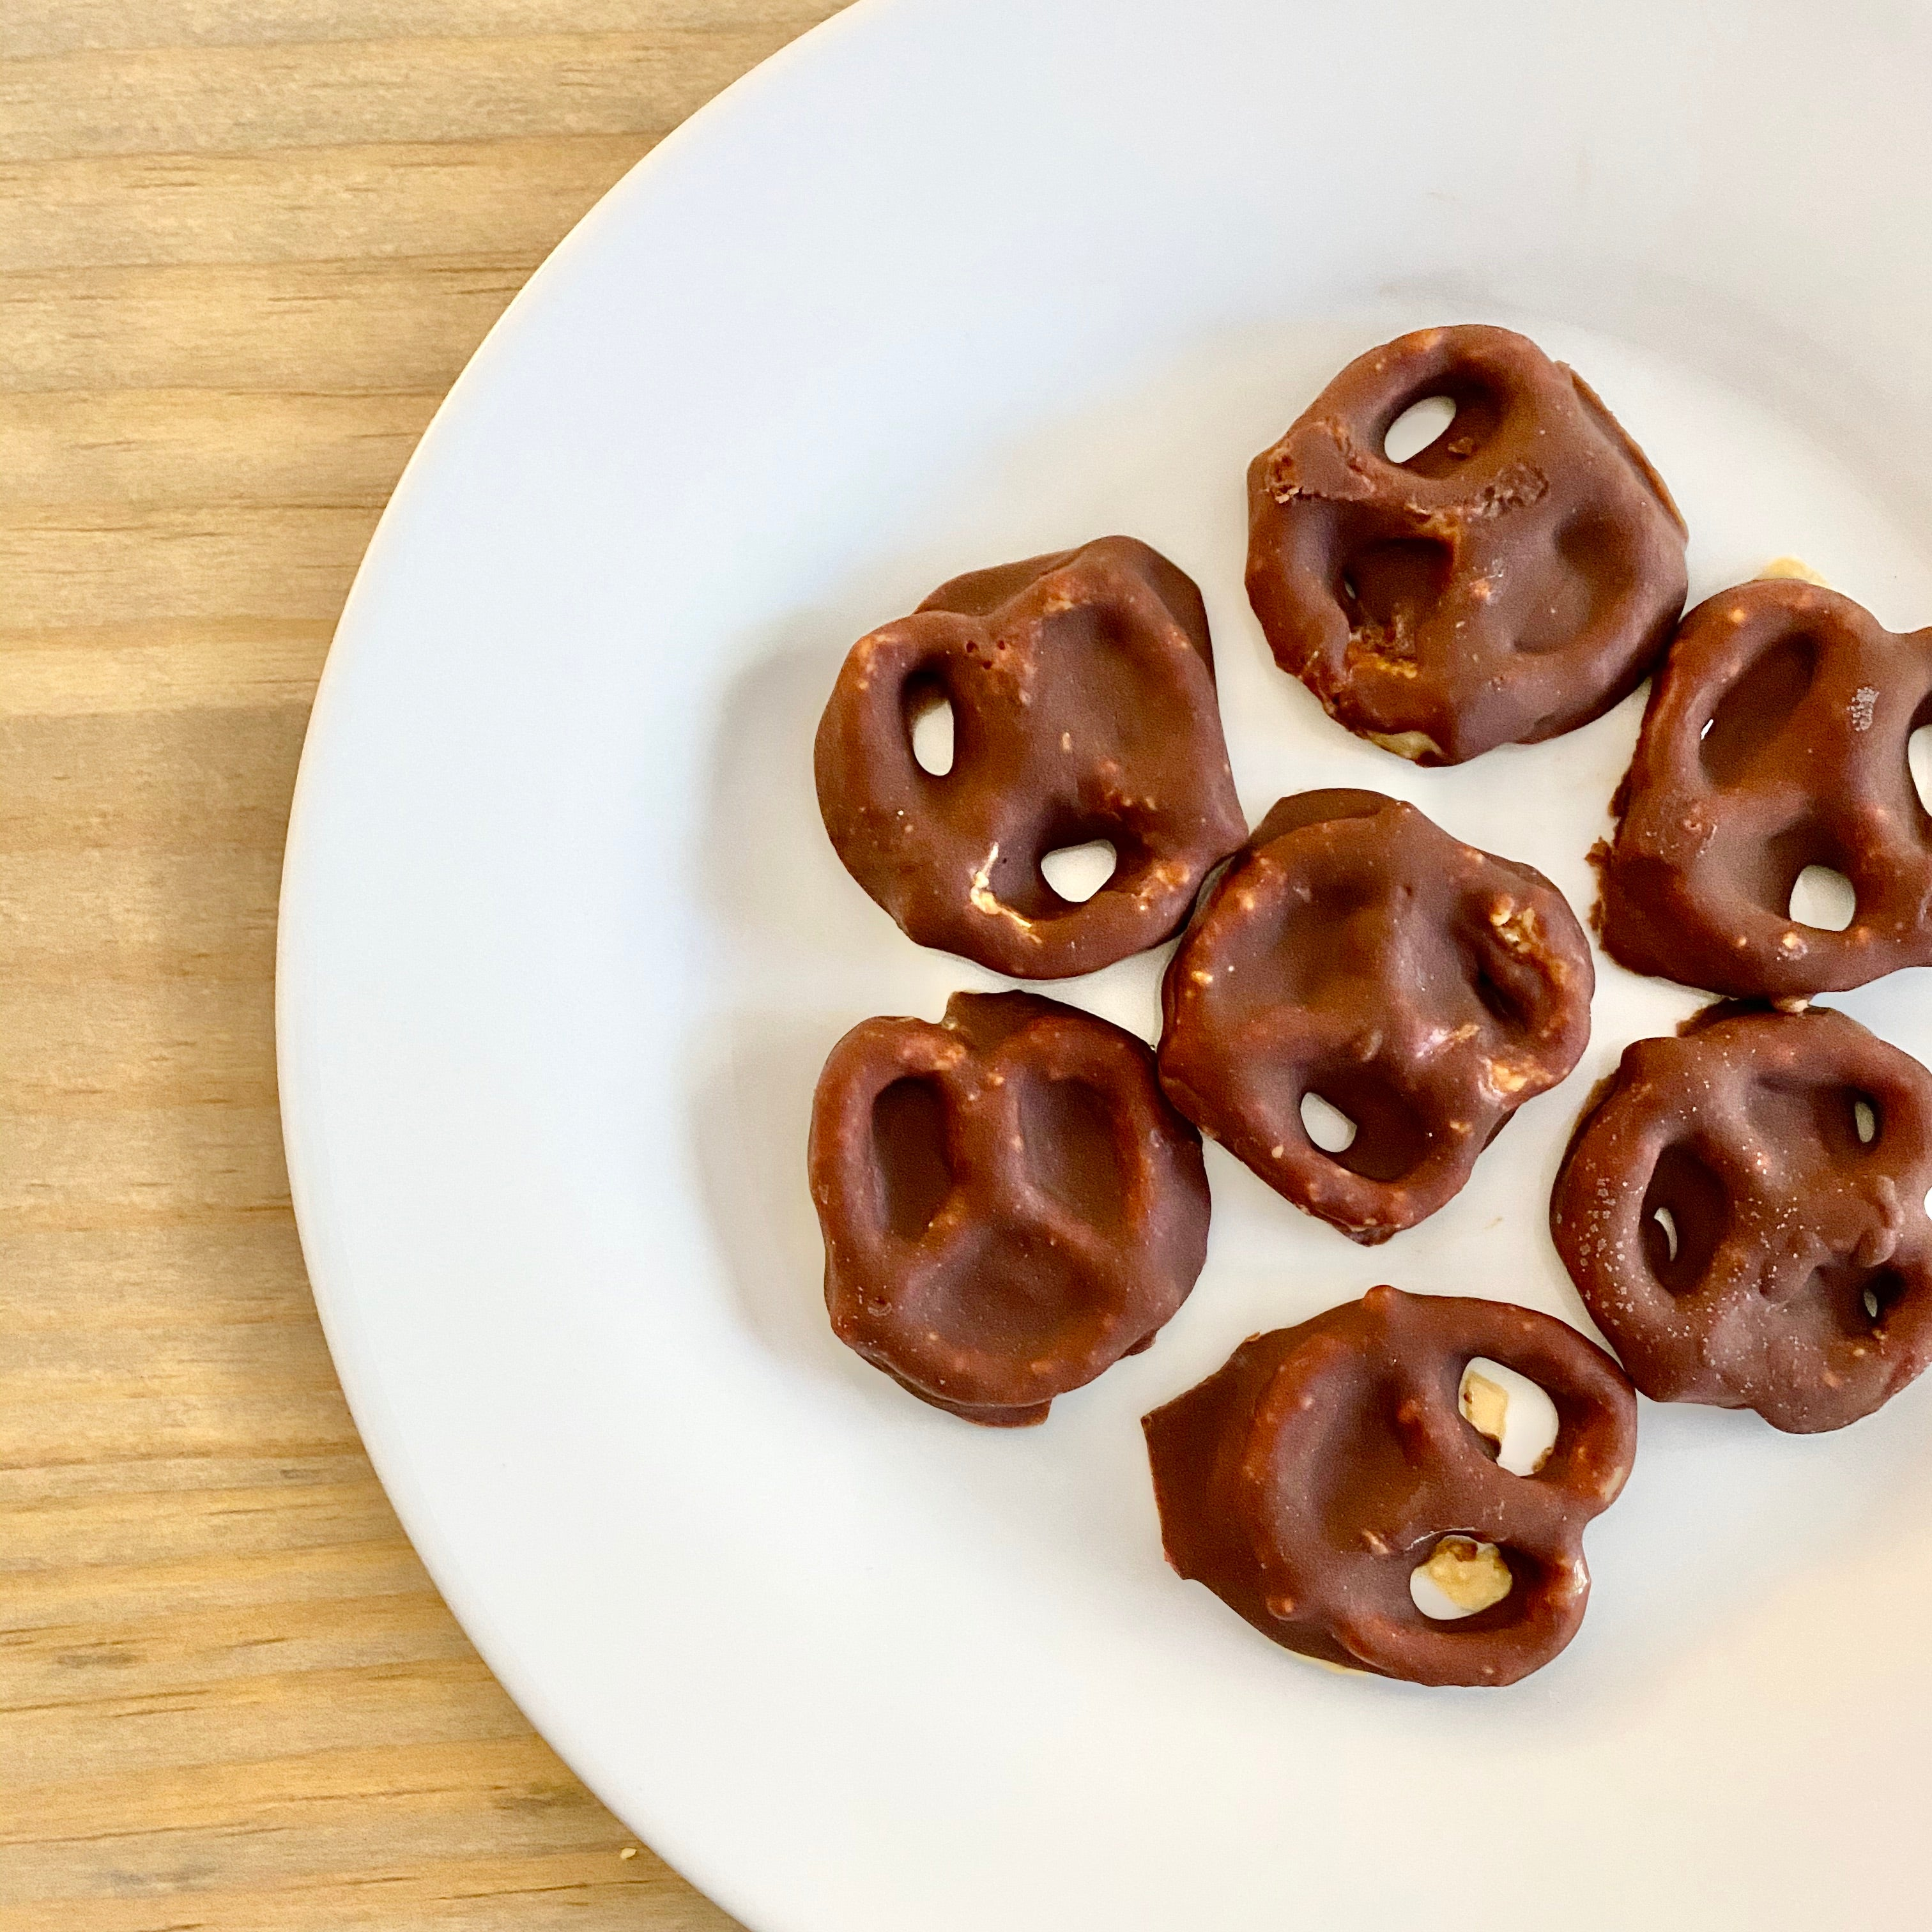 Pretzels covered in Natural Peanut Butter and chocolate.